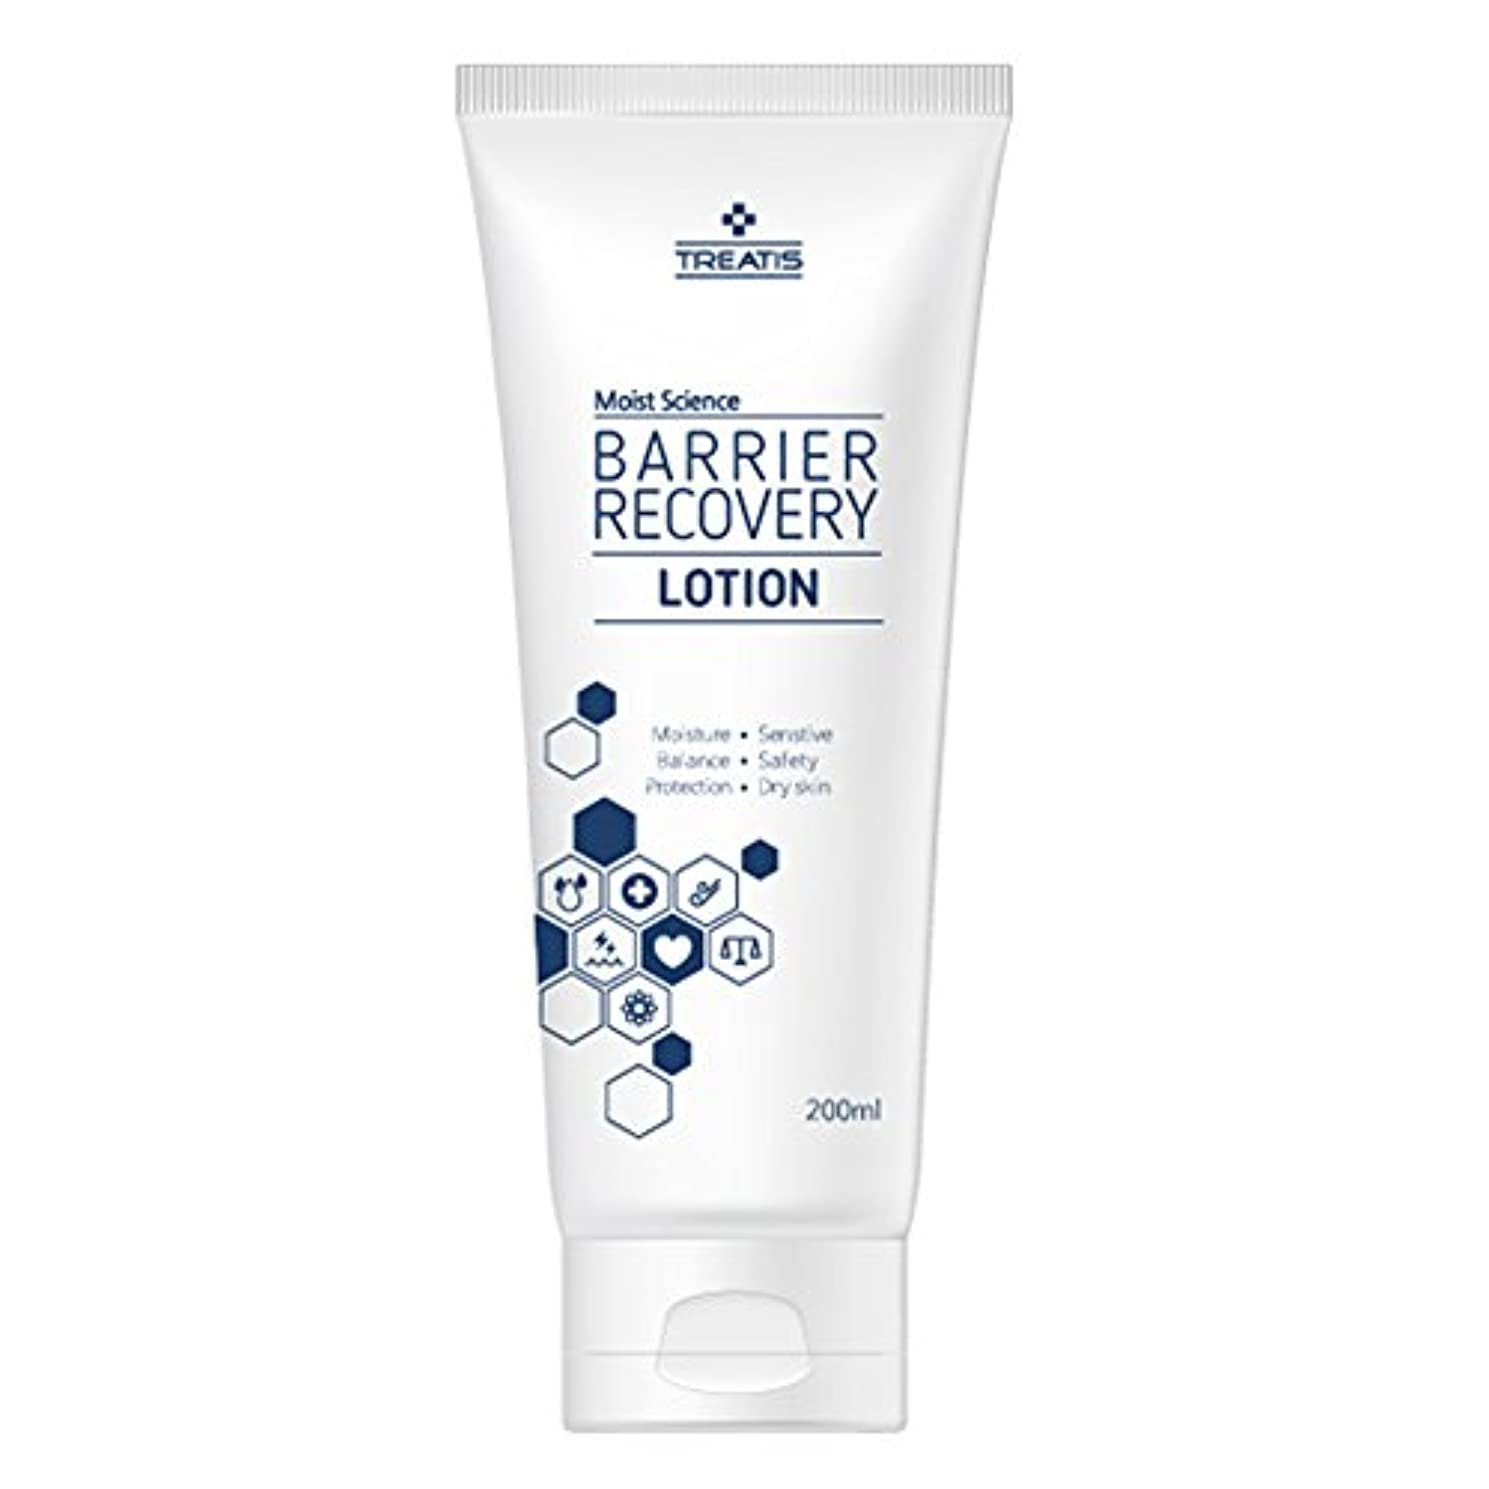 ピケタイトルうめき声Treatis barrier recovery lotion 7oz (200ml)/Moisture, Senstive, Balance, Safty, Protection, Dry skin [並行輸入品]